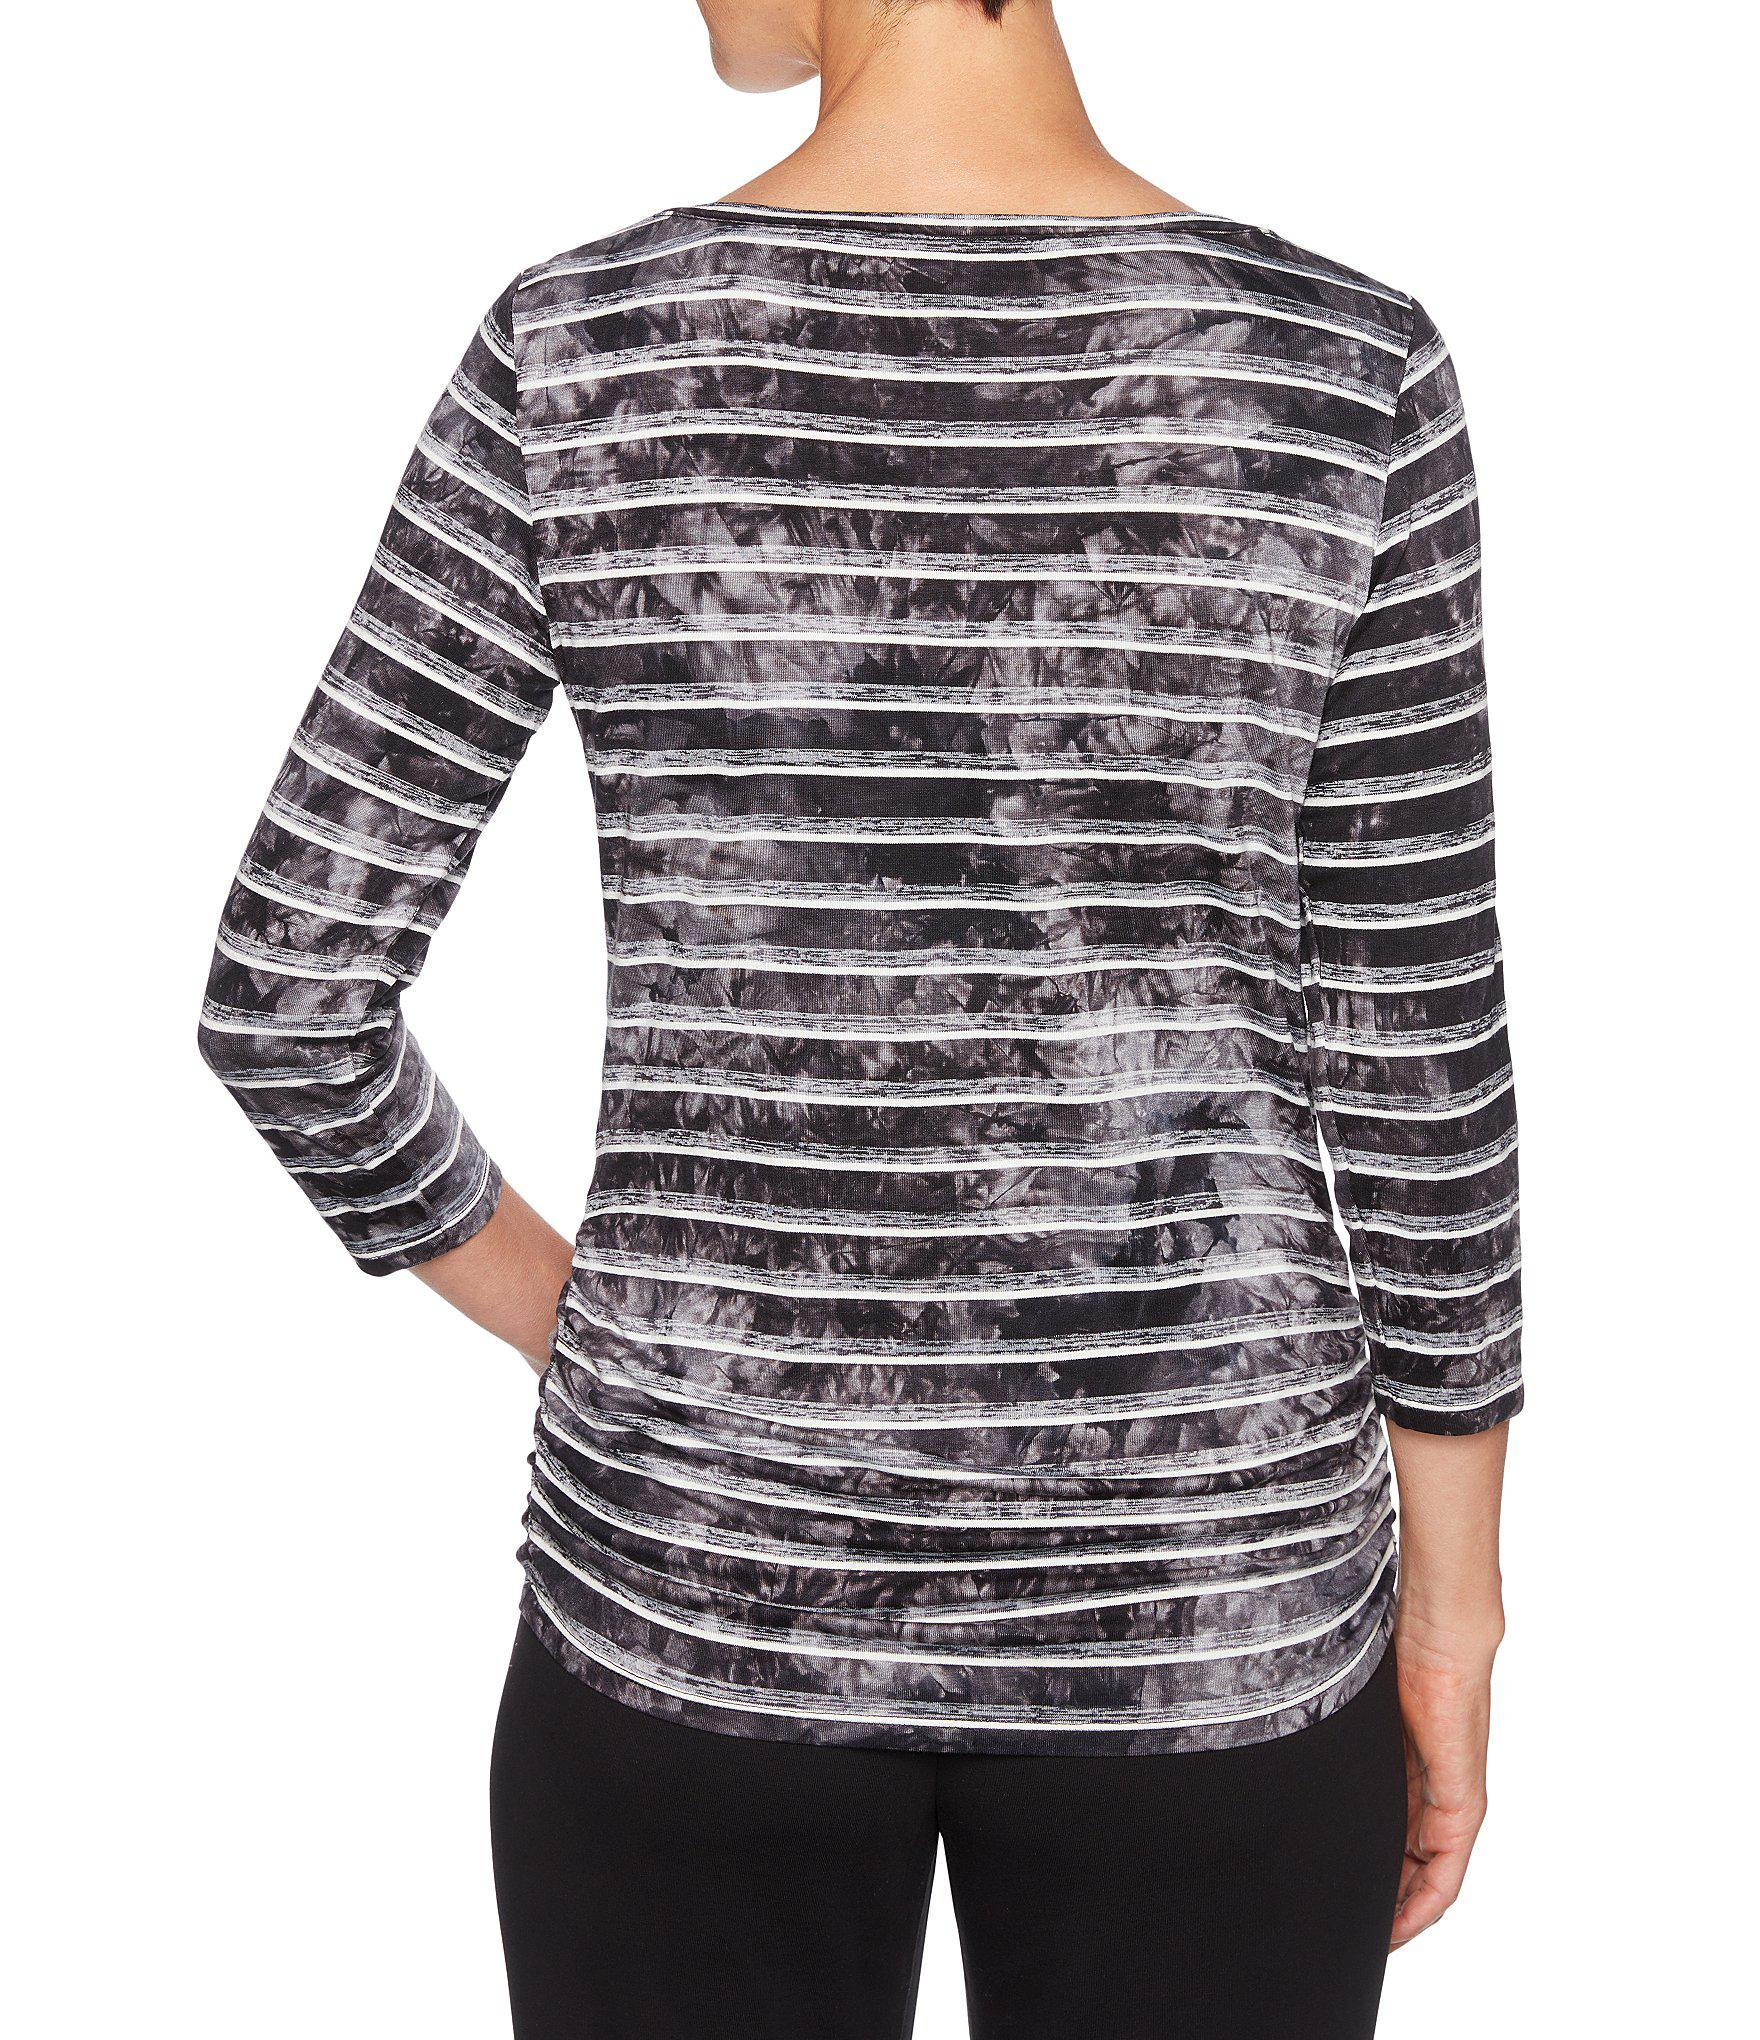 c9979c83cb2 Ruby Rd - Black Embellished Boat Neck Double Side Ruching Stripe Knit Top -  Lyst. View fullscreen